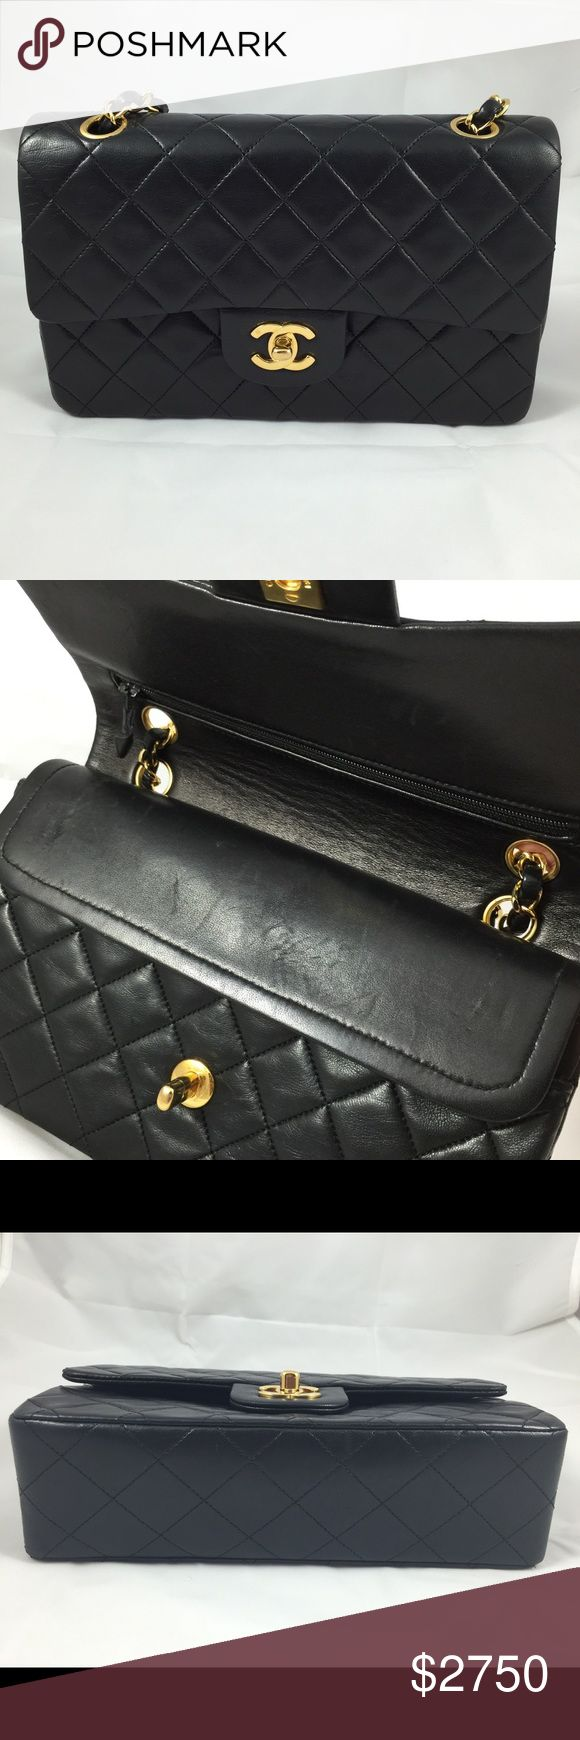 Vintage Chanel Double Flap Lambskin Bag Bought it in TheRealReal.com $3750.00 couple scratches on the inner lining. PRE OWNED • I'm the 2nd owner of this bag • I only used it couple times • I will give you the sizing this weekend • But as of now If you ask me it's a small size bag • Inclusion authenticity card • I don't have a dust bag but I can give you my YSL dustbag if you like • I haven't sold anything yet so I recommend that I'll go through posh to aunthenticate the item for you •…